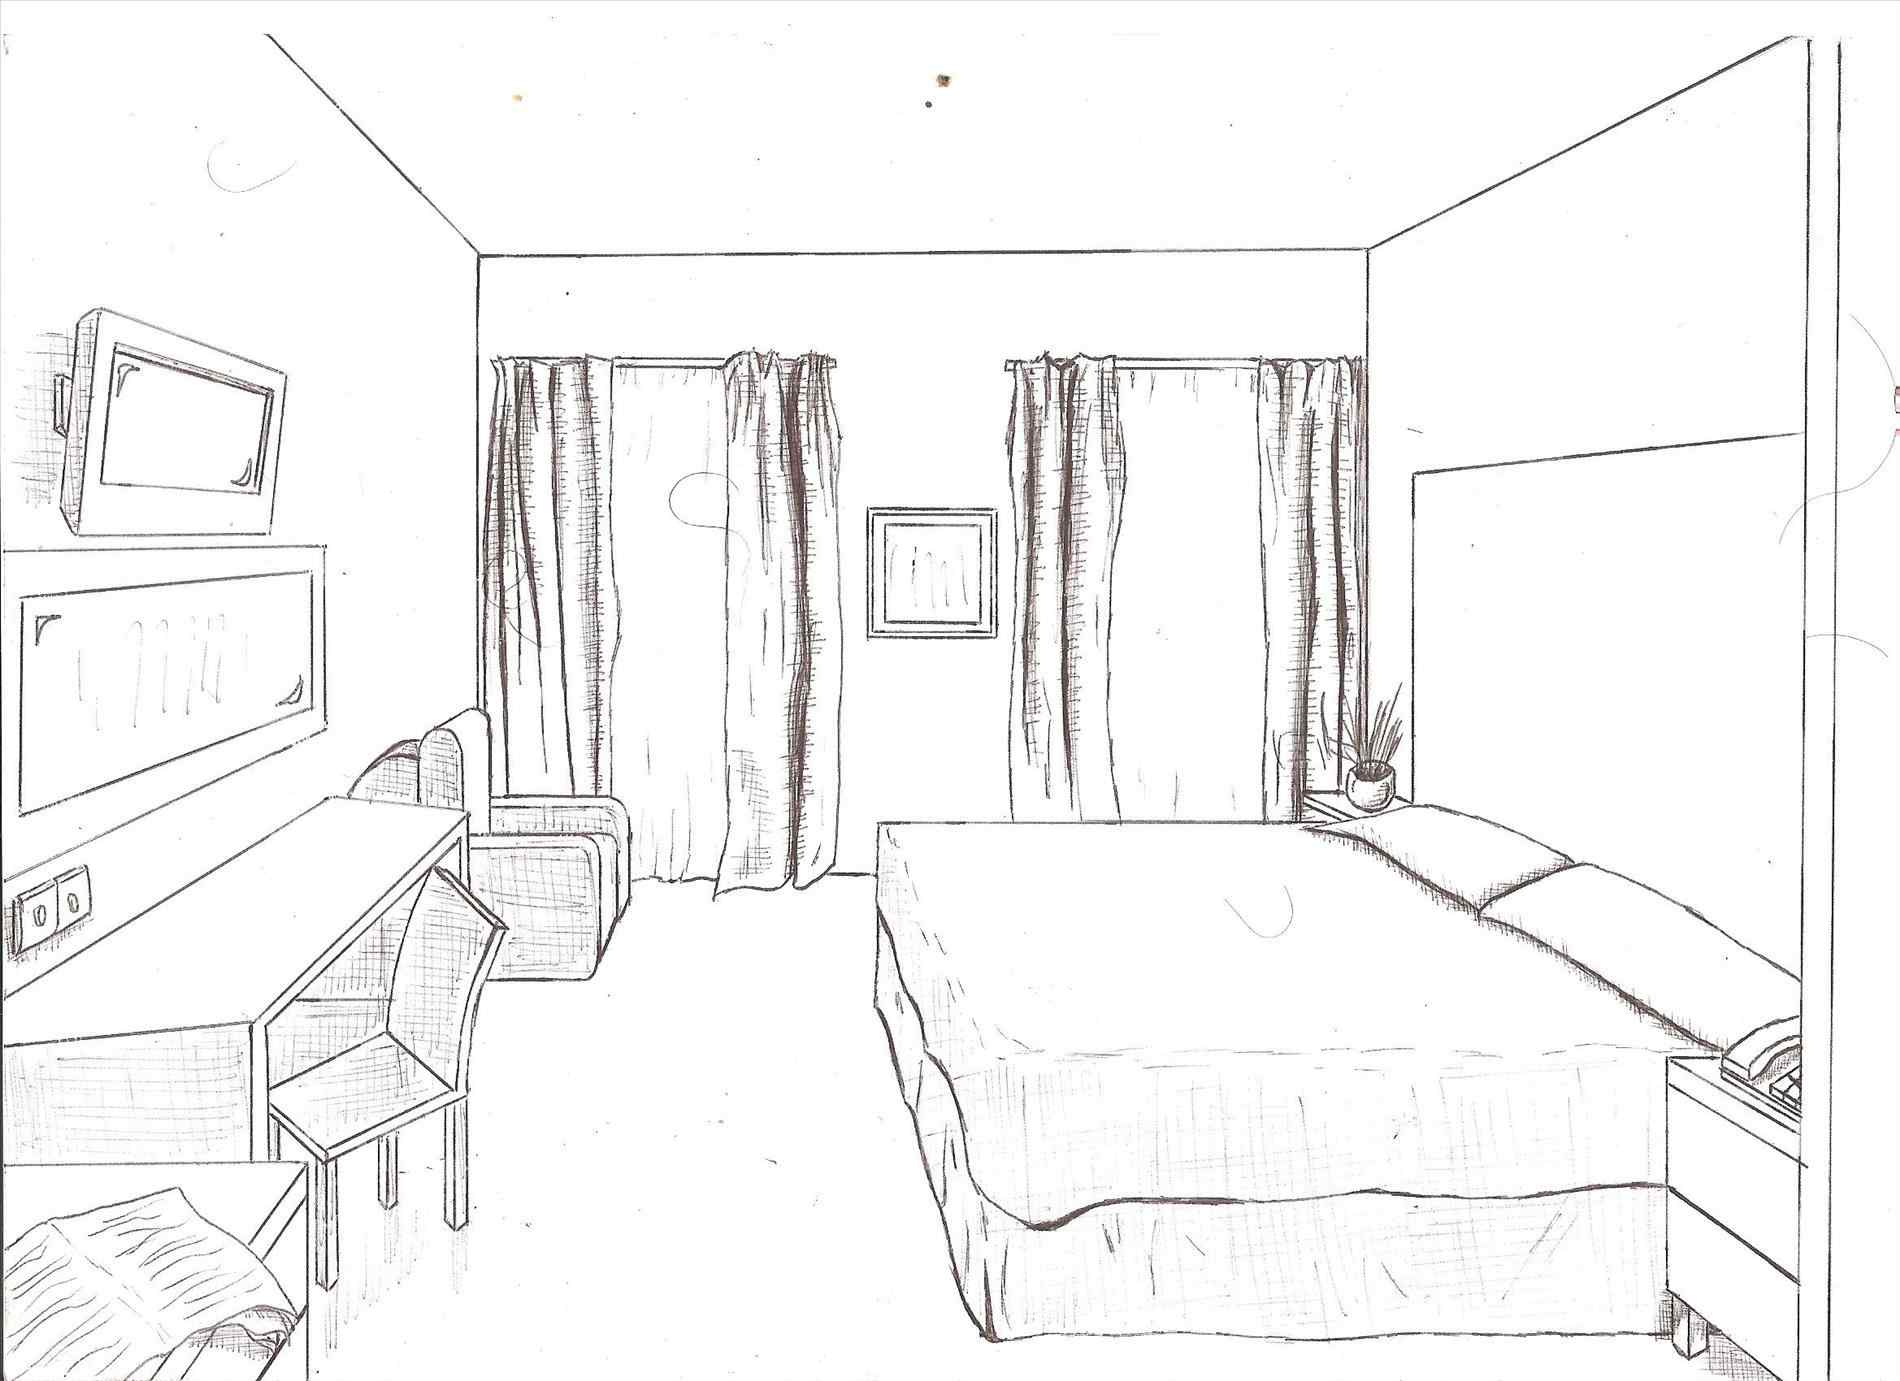 1900x1381 bed drawings and design cool cartoon background youtube how easy - Interior Design Drawings Easy